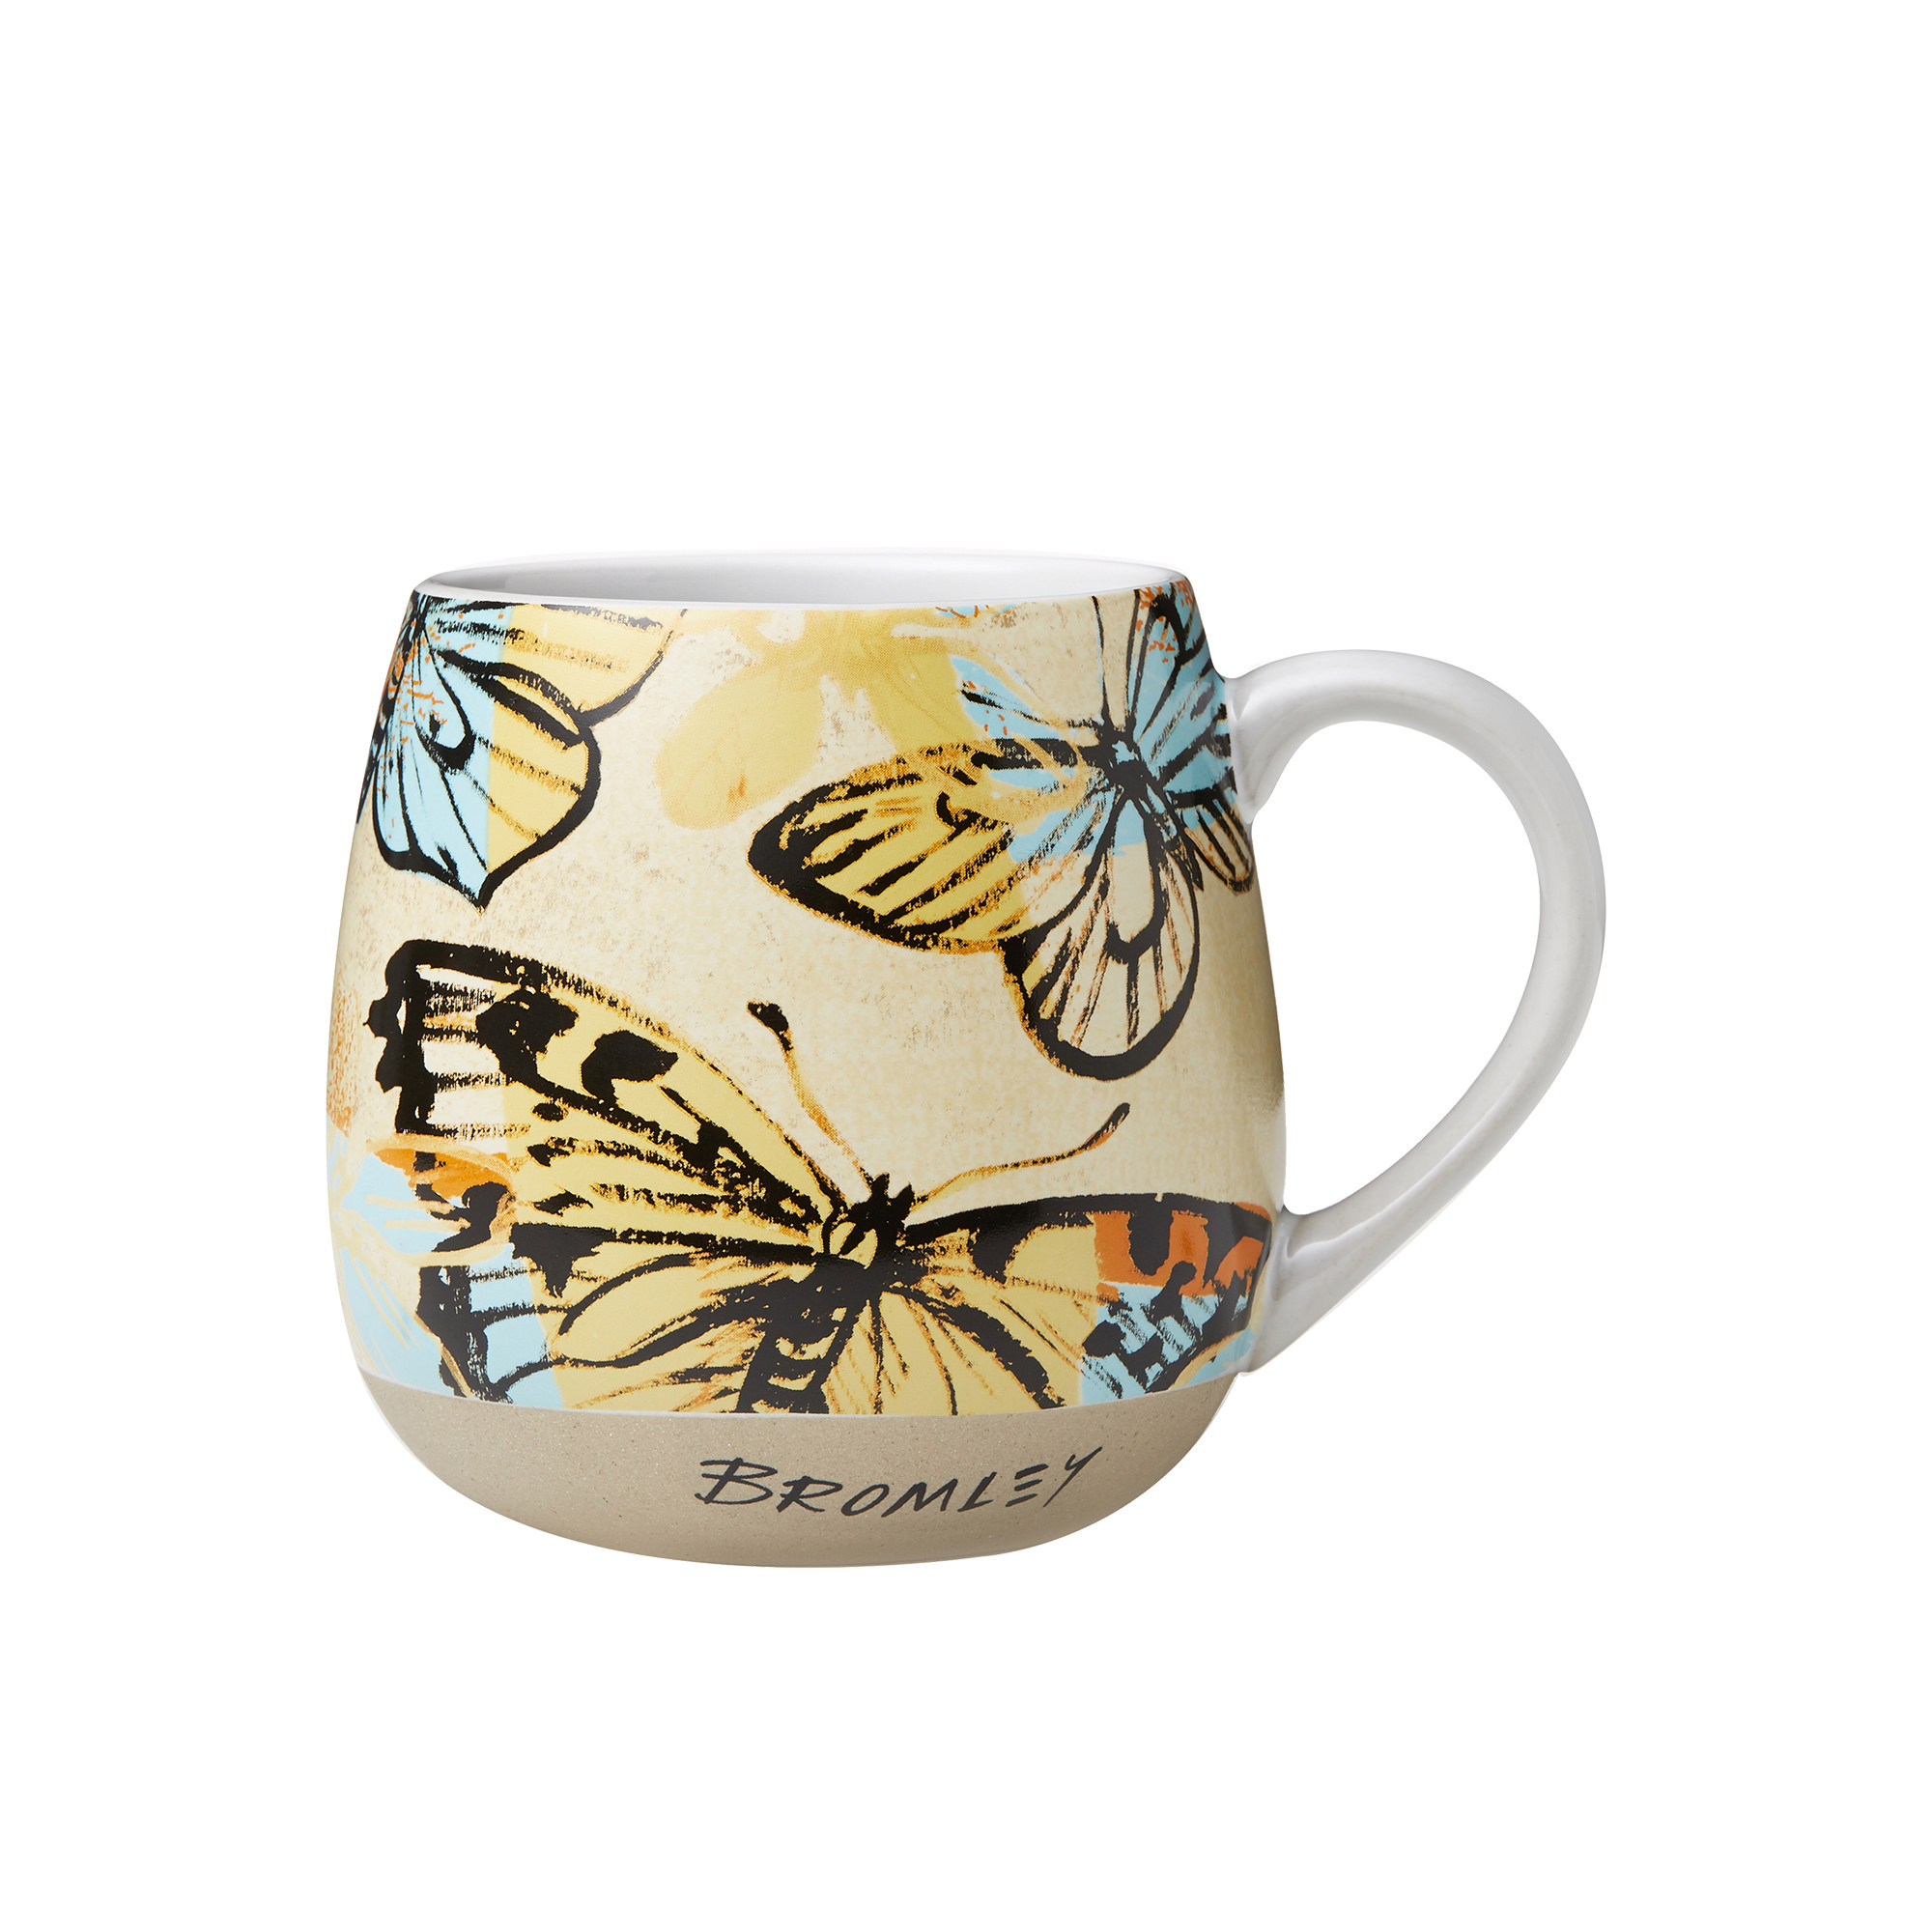 Robert Gordon Bromley X Hug Me Mug 550ml Yellow Butterflies